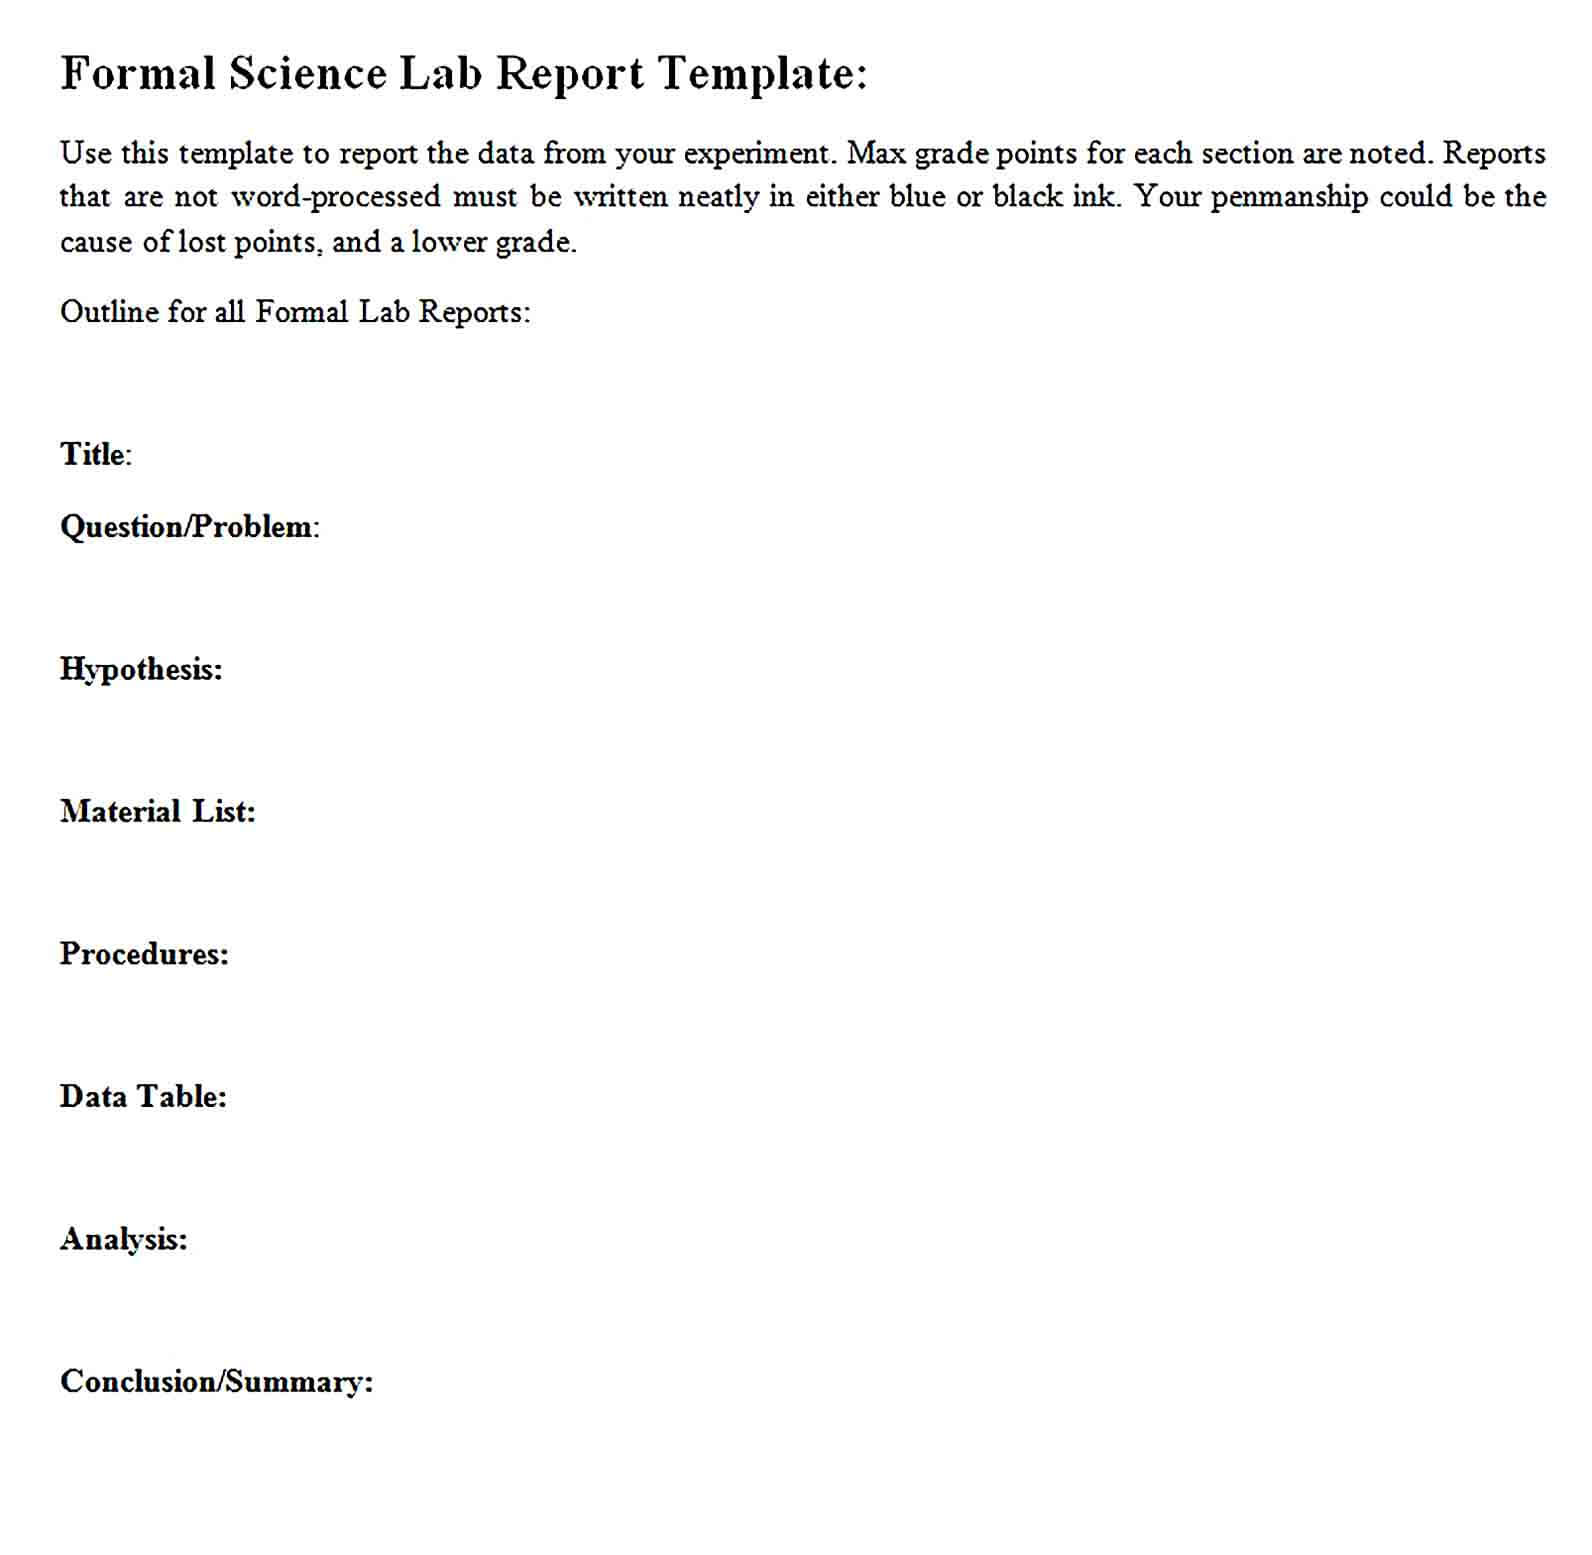 Sample Formal Science Lab Report Template